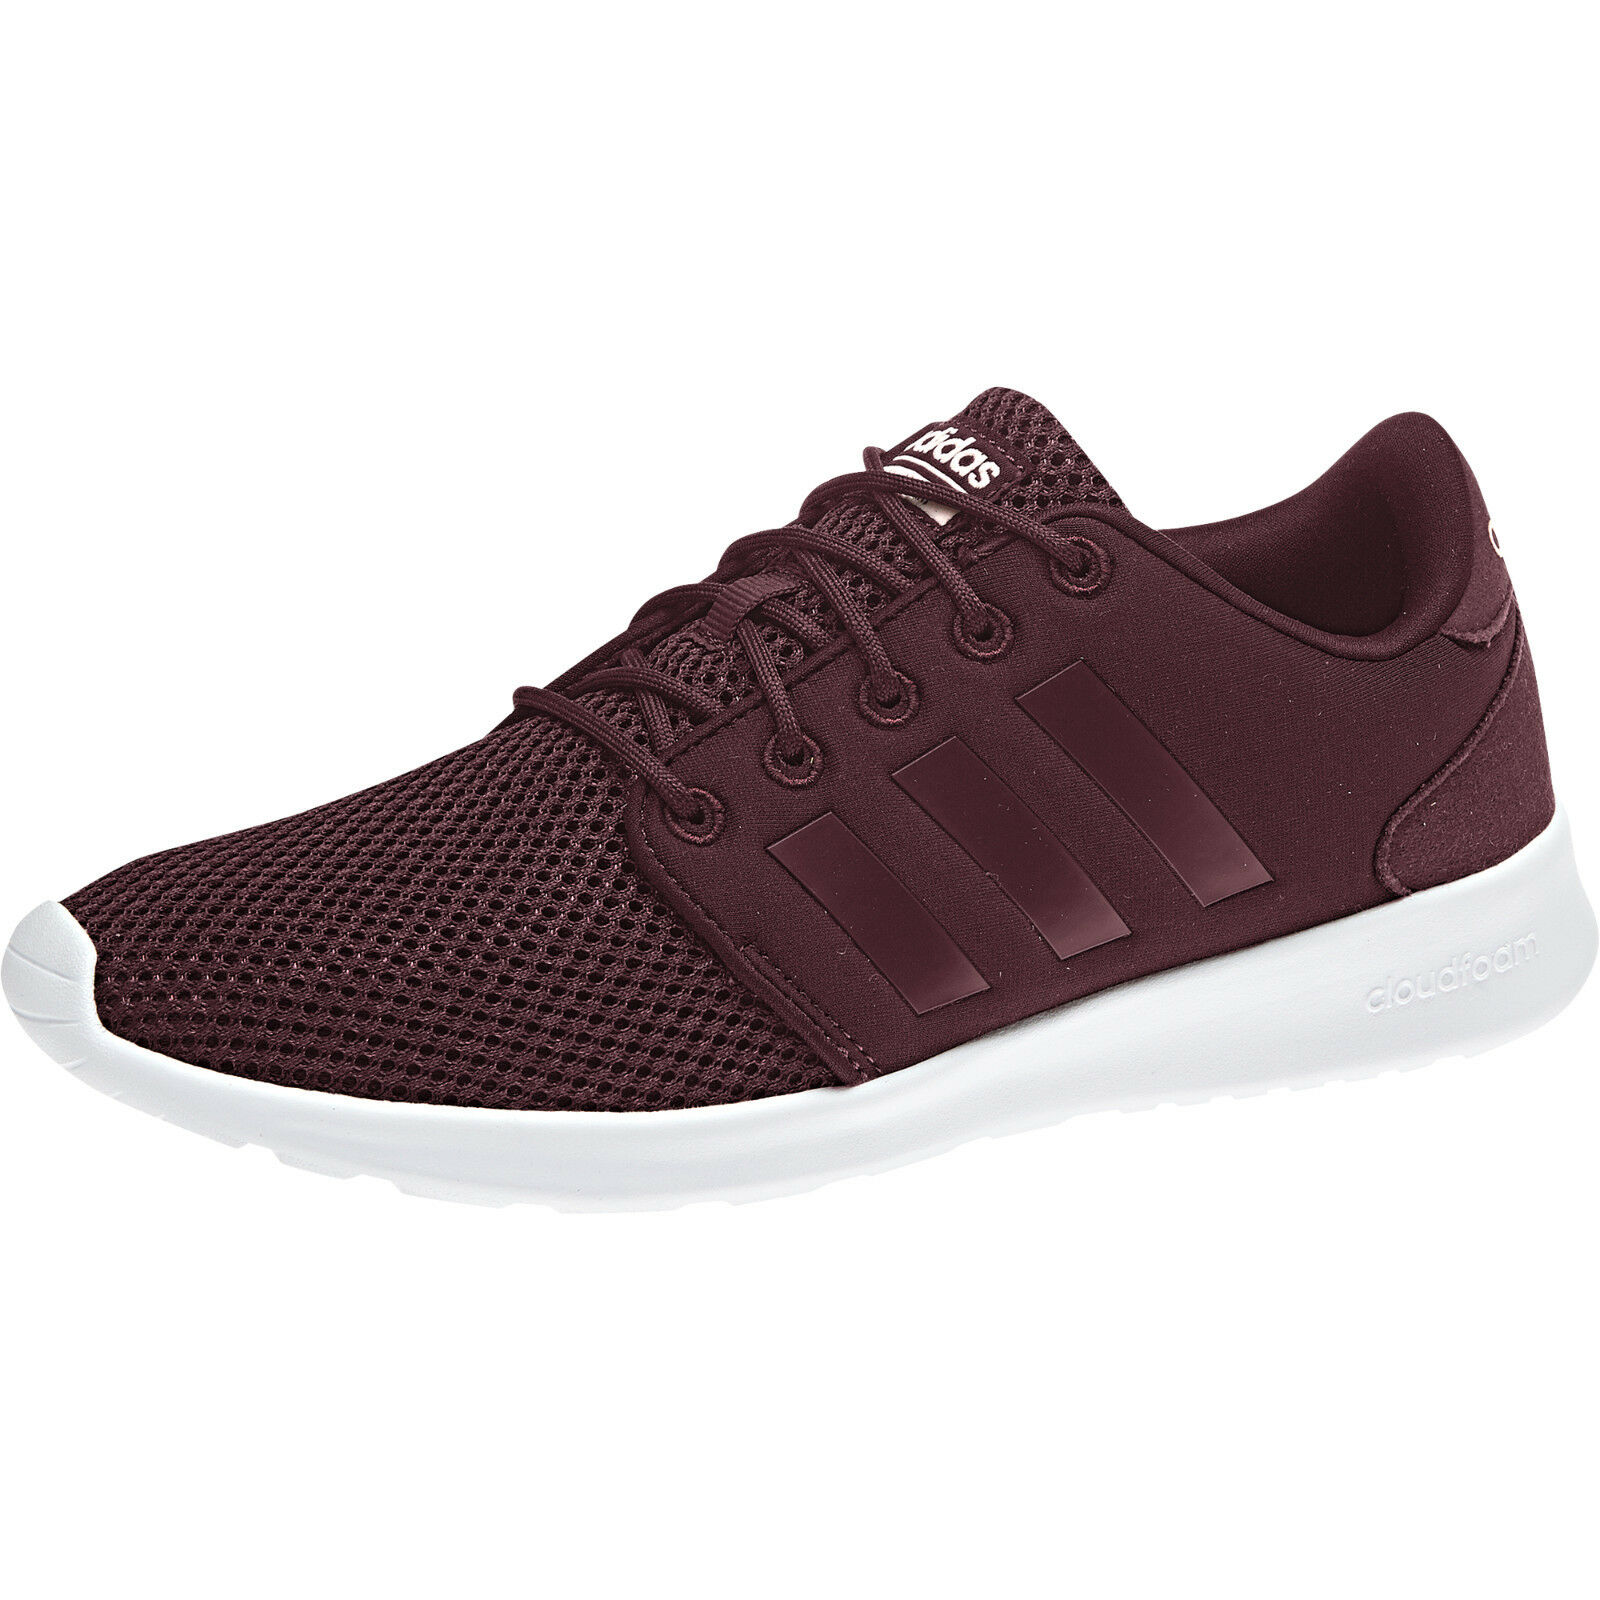 Adidas Women Running shoes Cloudfoam QT  Racer Fashion Sneakers Boots B43760 New  order now